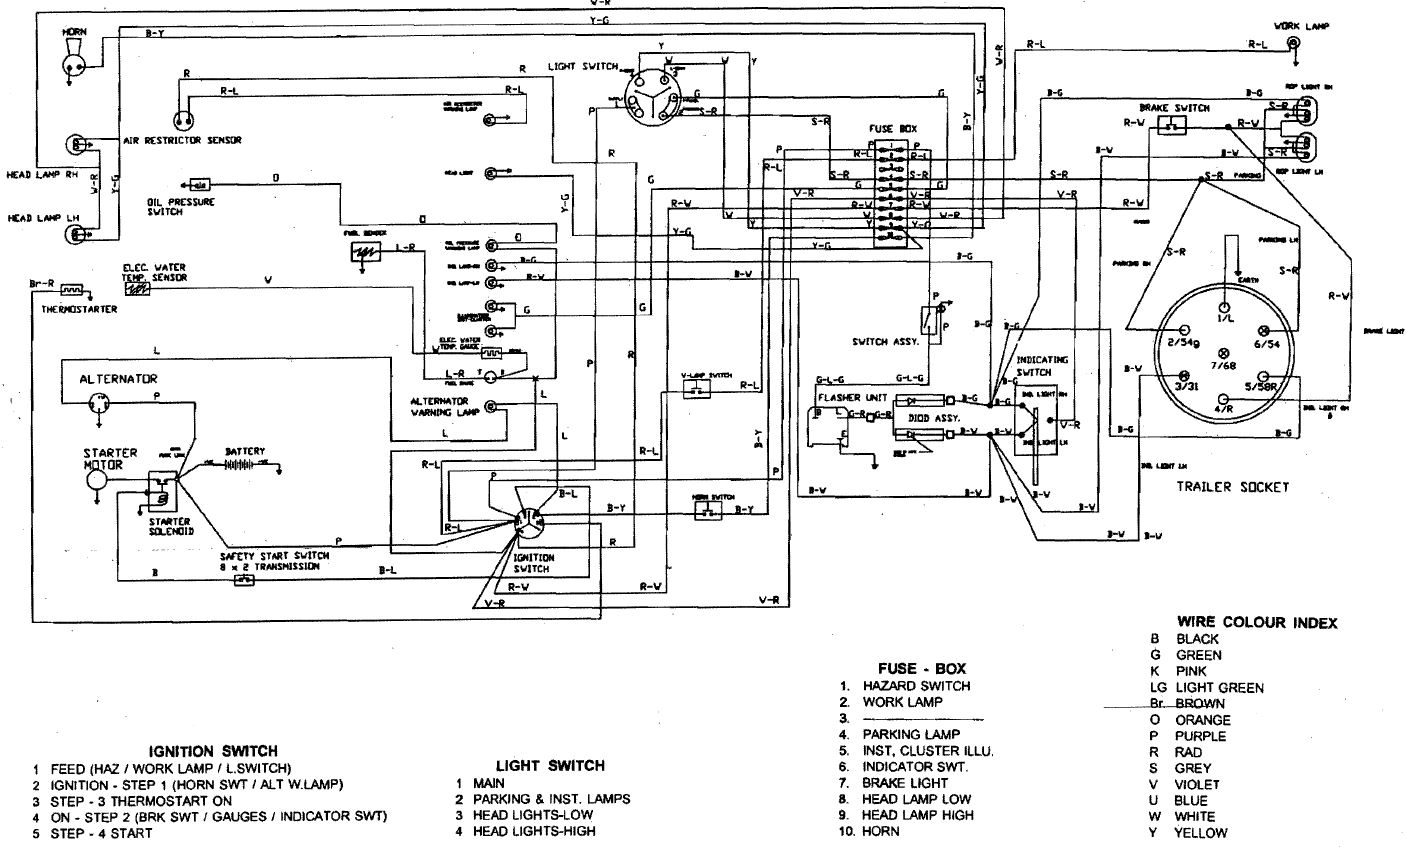 Cat Wiring Harness Diagram For Generator Reinvent Your Generac Electrical Tractor Wire Light Detailed Schematics Rh Antonartgallery Com Diagrams Electric